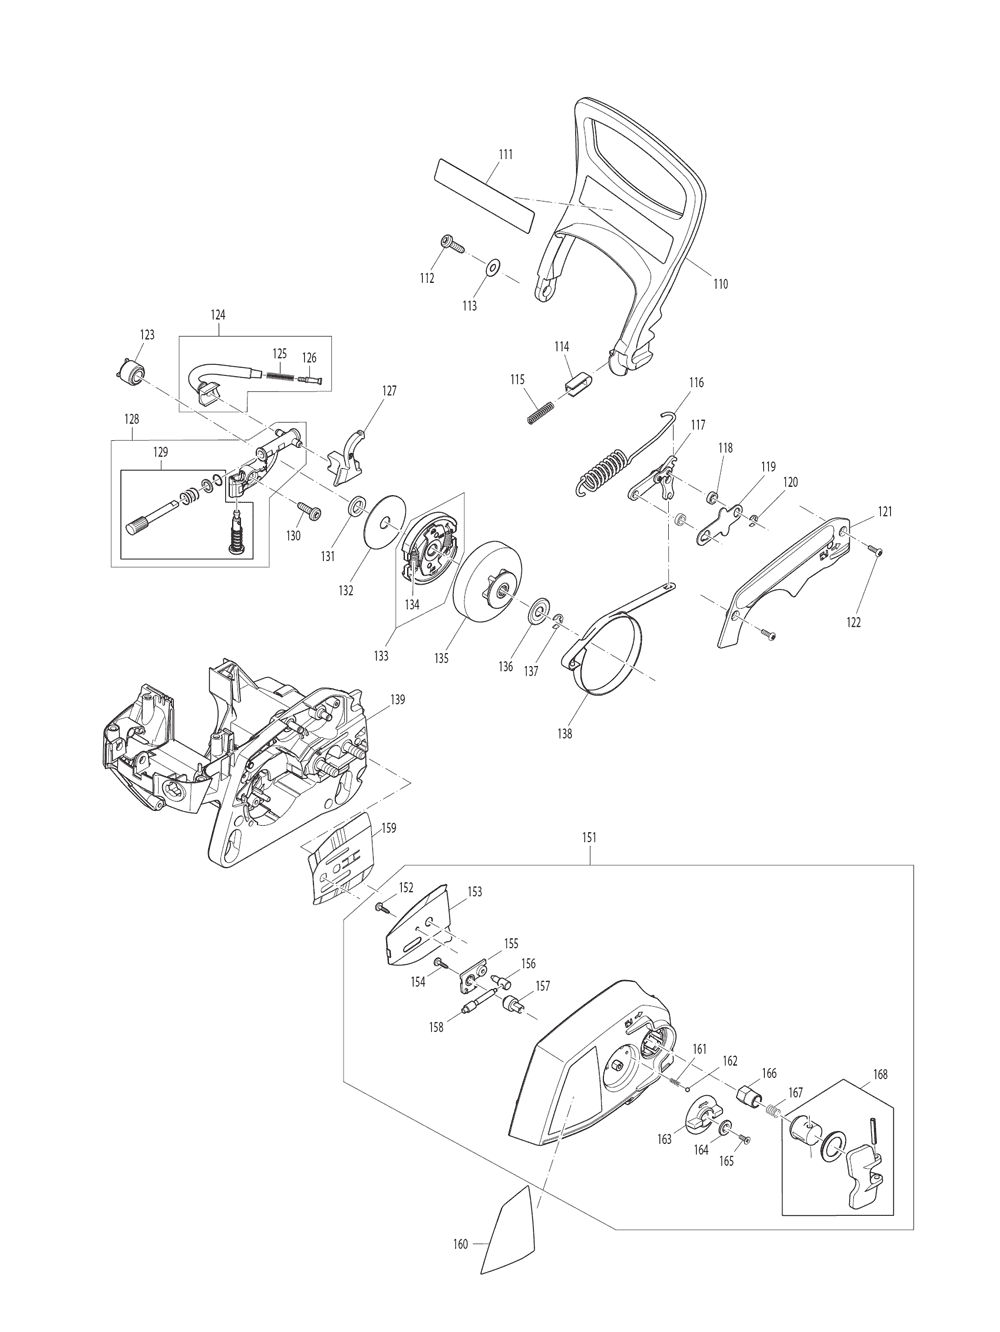 EA3201S40B-T2-Makita-PB-4Break Down